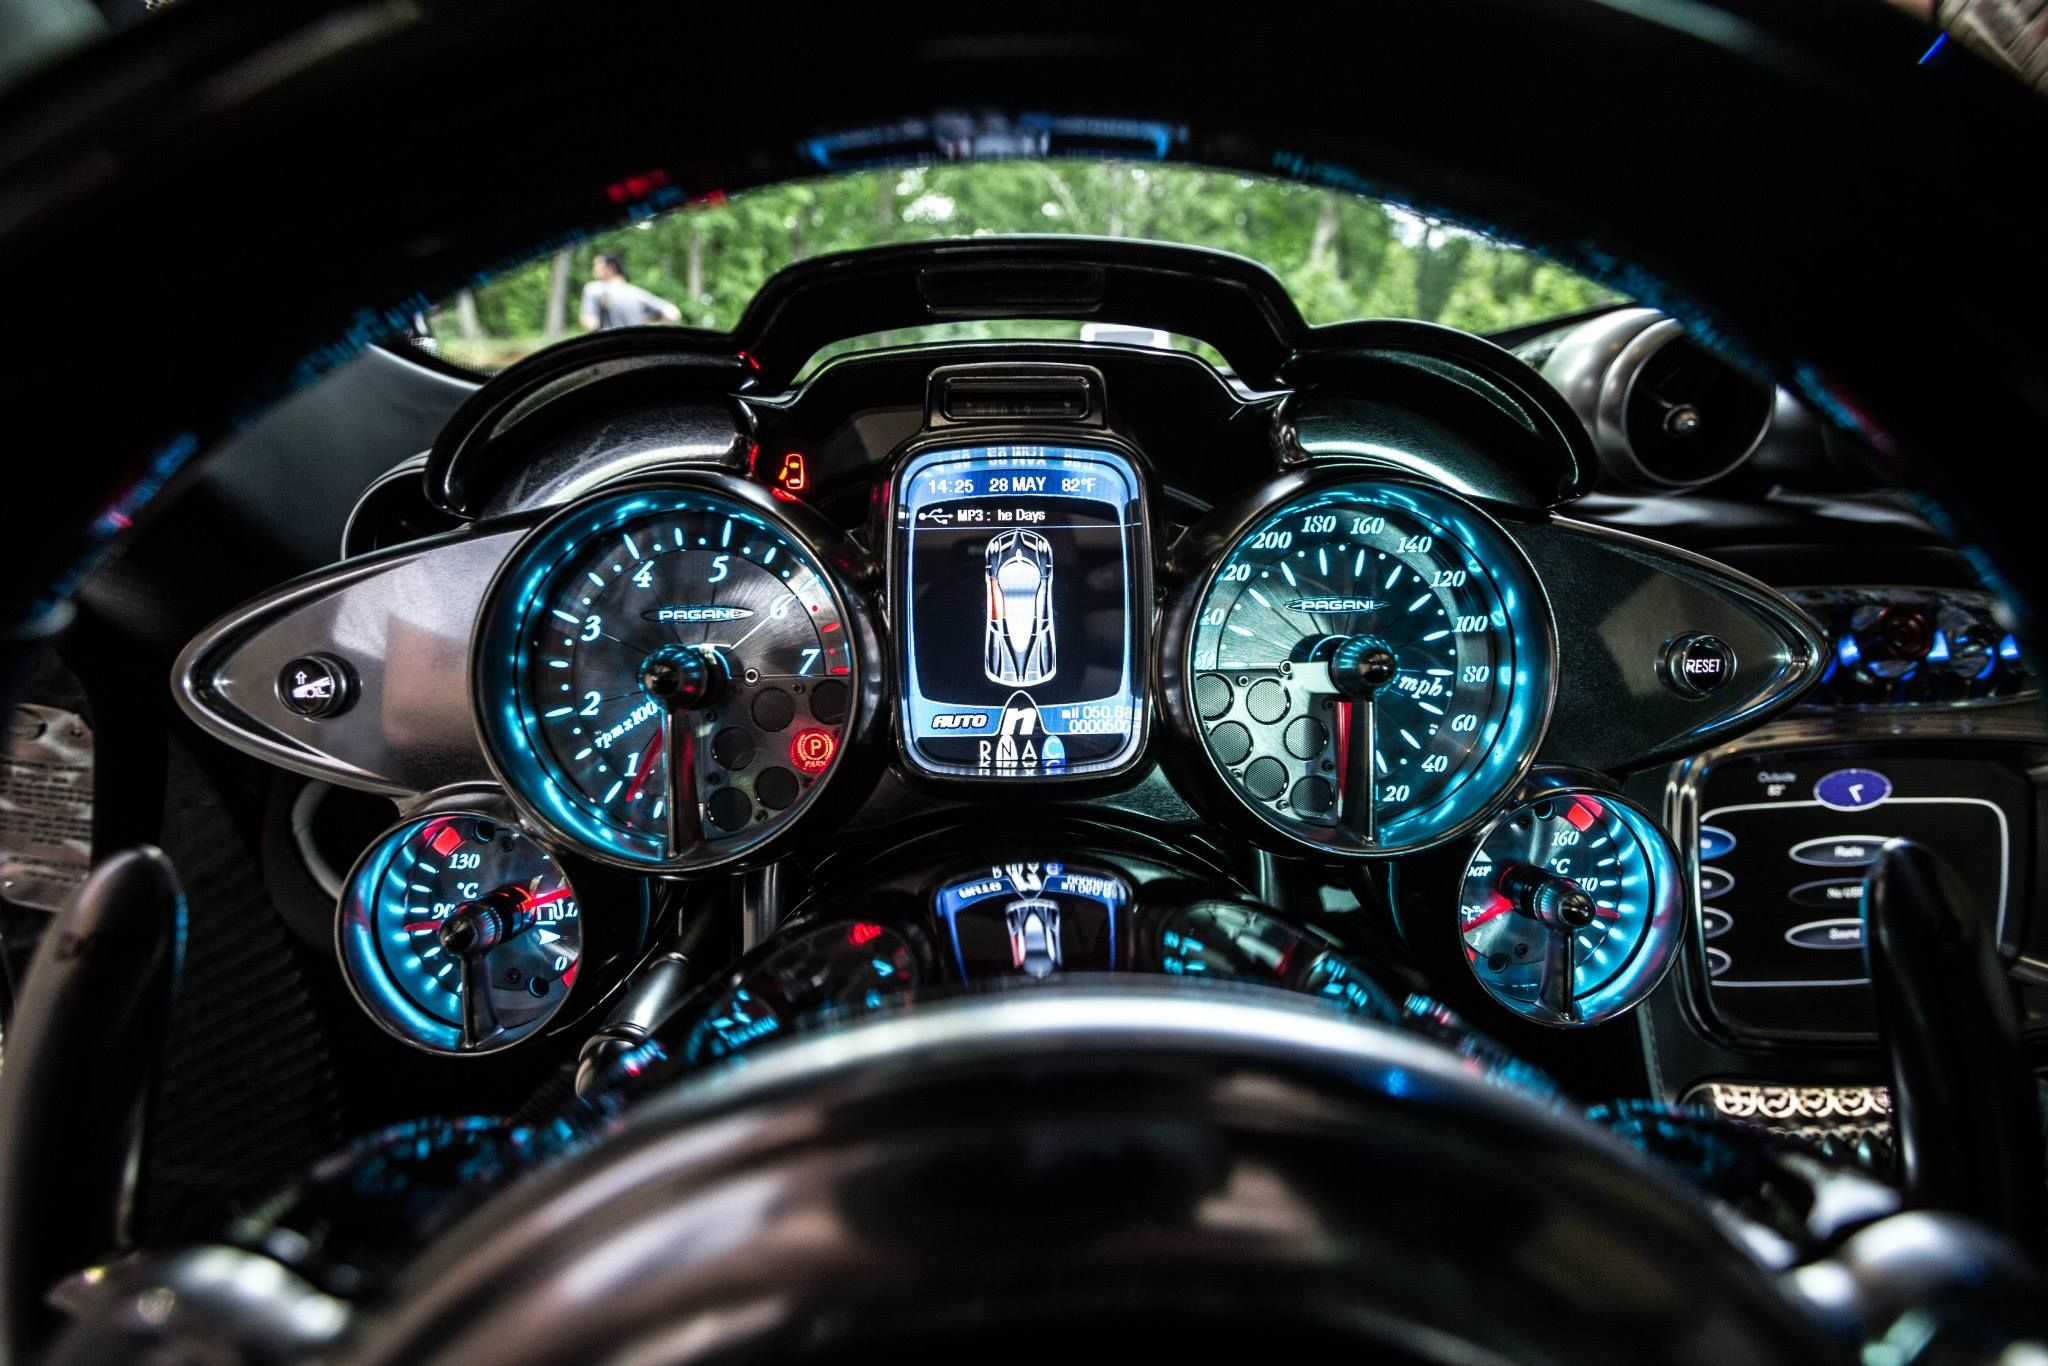 2016 pagani huayra interior good quality wallpaper cars pinterest pagani huayra interior. Black Bedroom Furniture Sets. Home Design Ideas